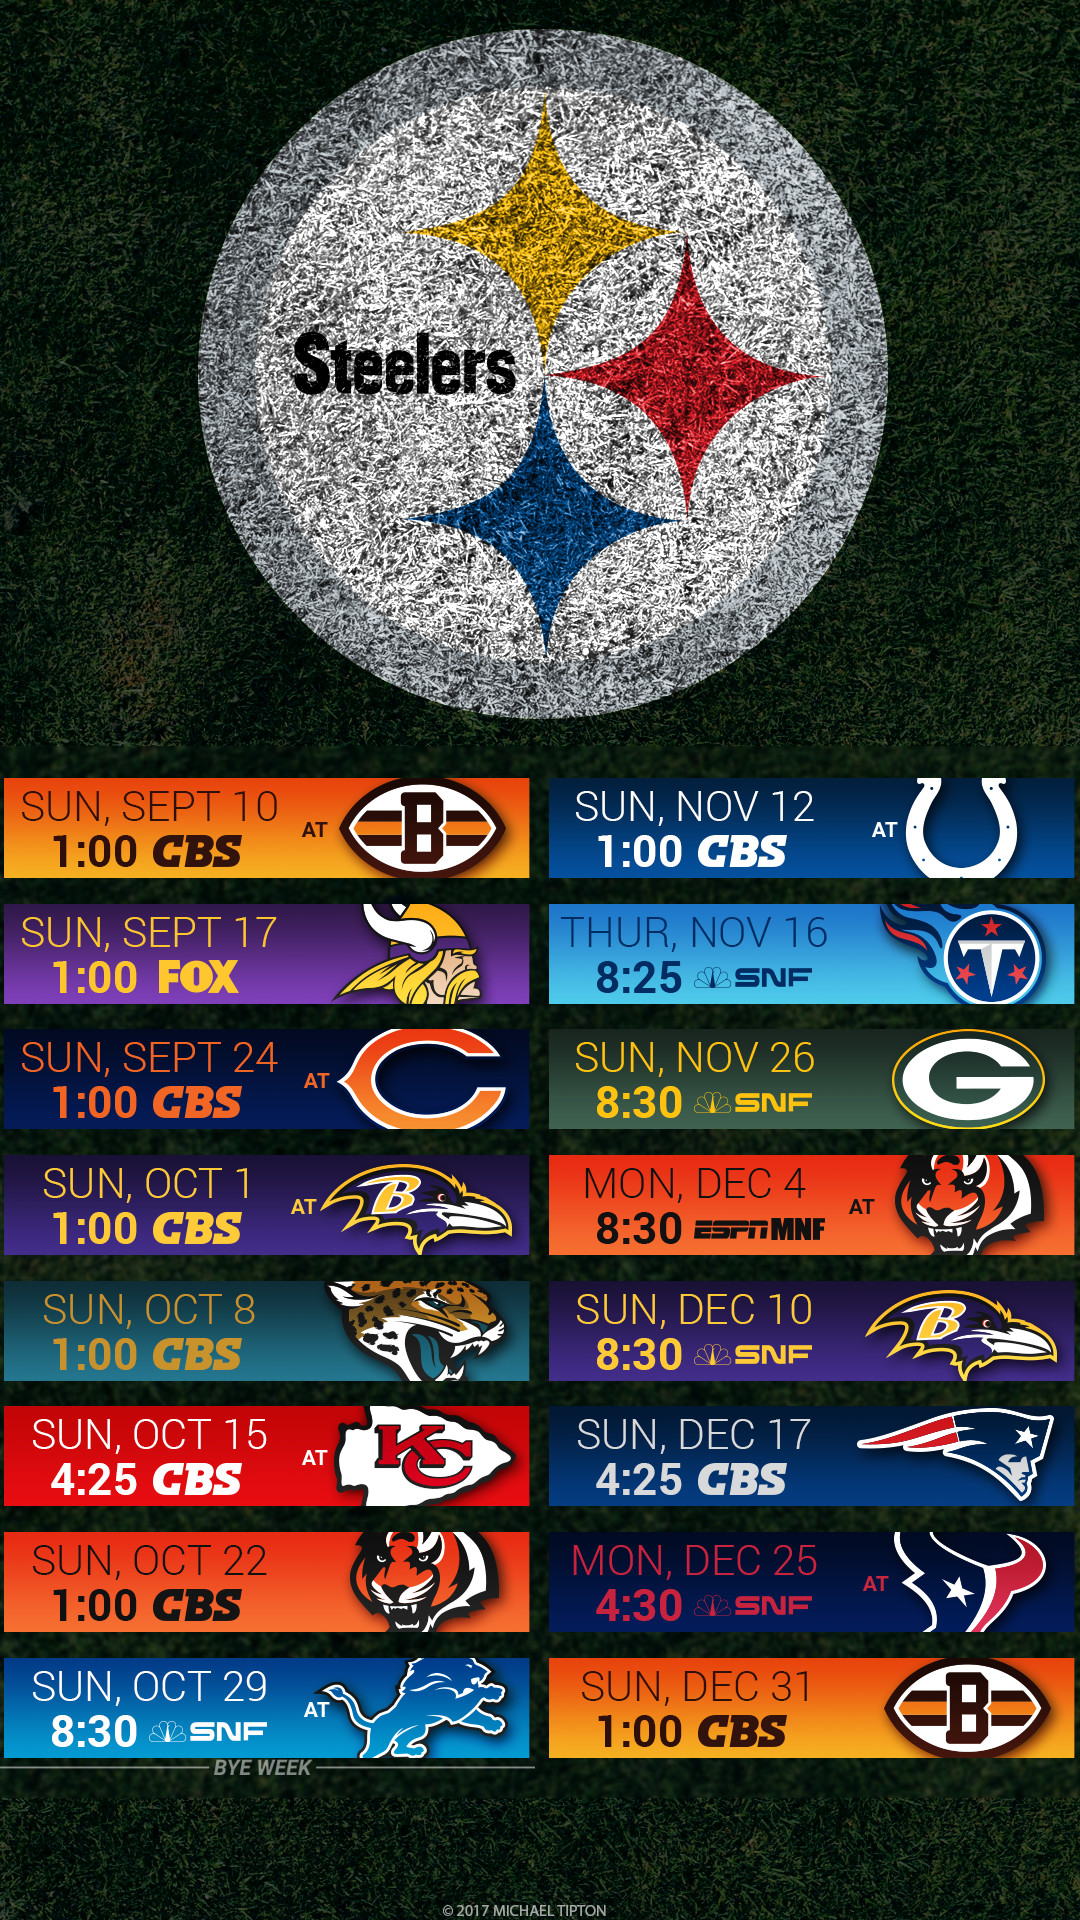 Pittsburgh steelers live wallpaper 70 images - Steelers background ...